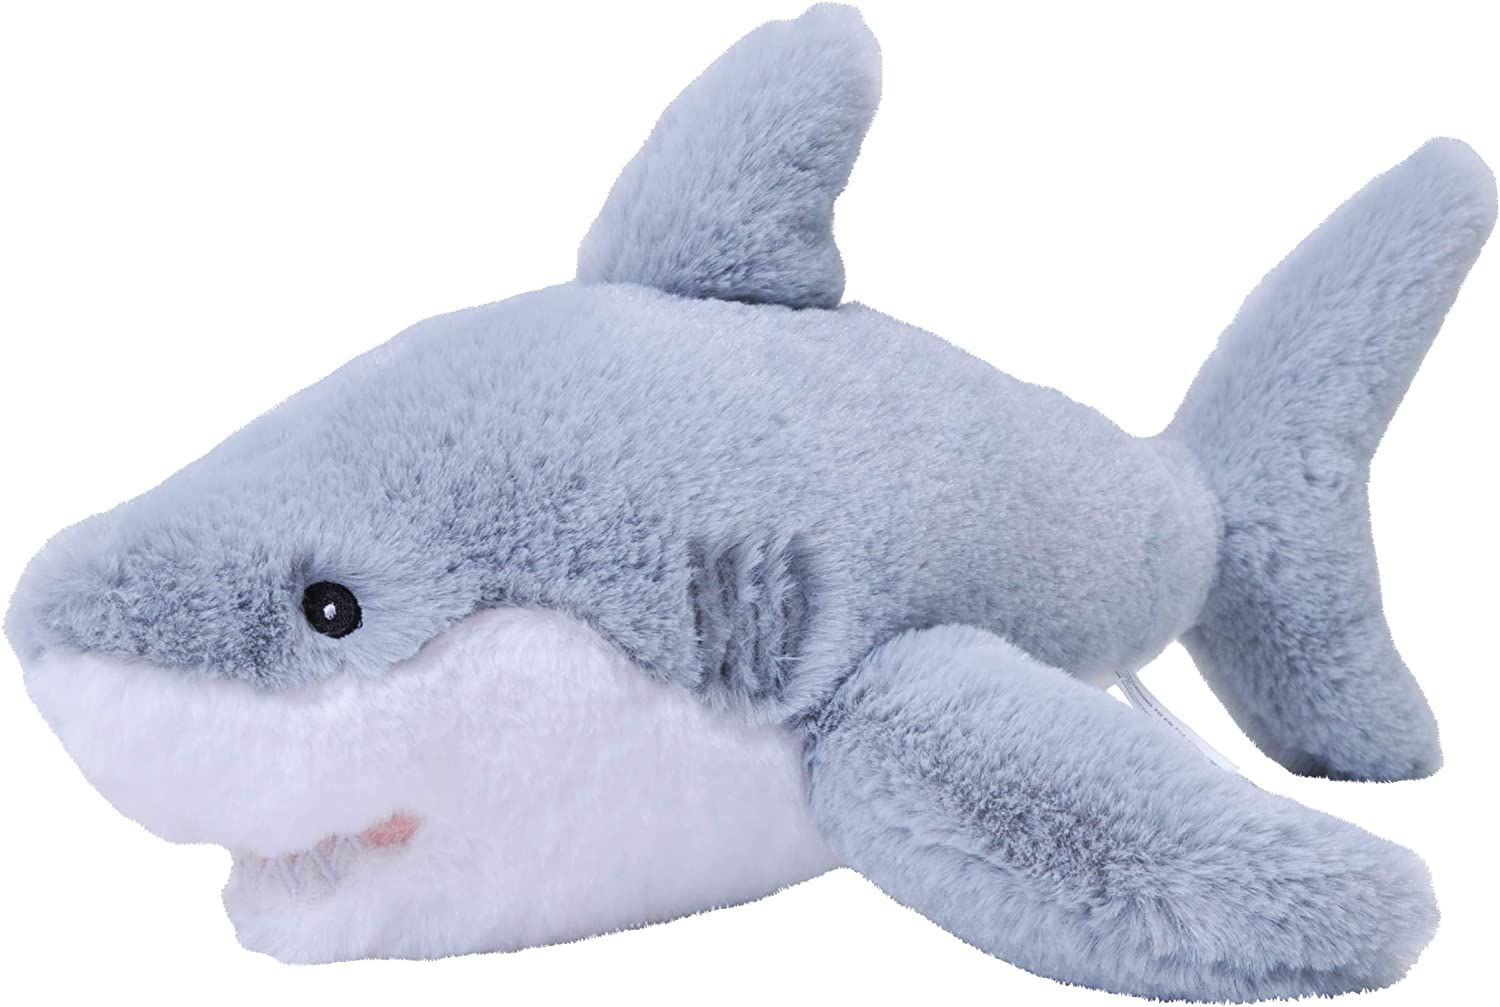 Wild Republic EcoKins Great White Shark Stuffed Animal 12 inch, Eco Friendly Gifts for Kids, Plush Toy, Handcrafted Using 16 Recycled Plastic Water Bottles